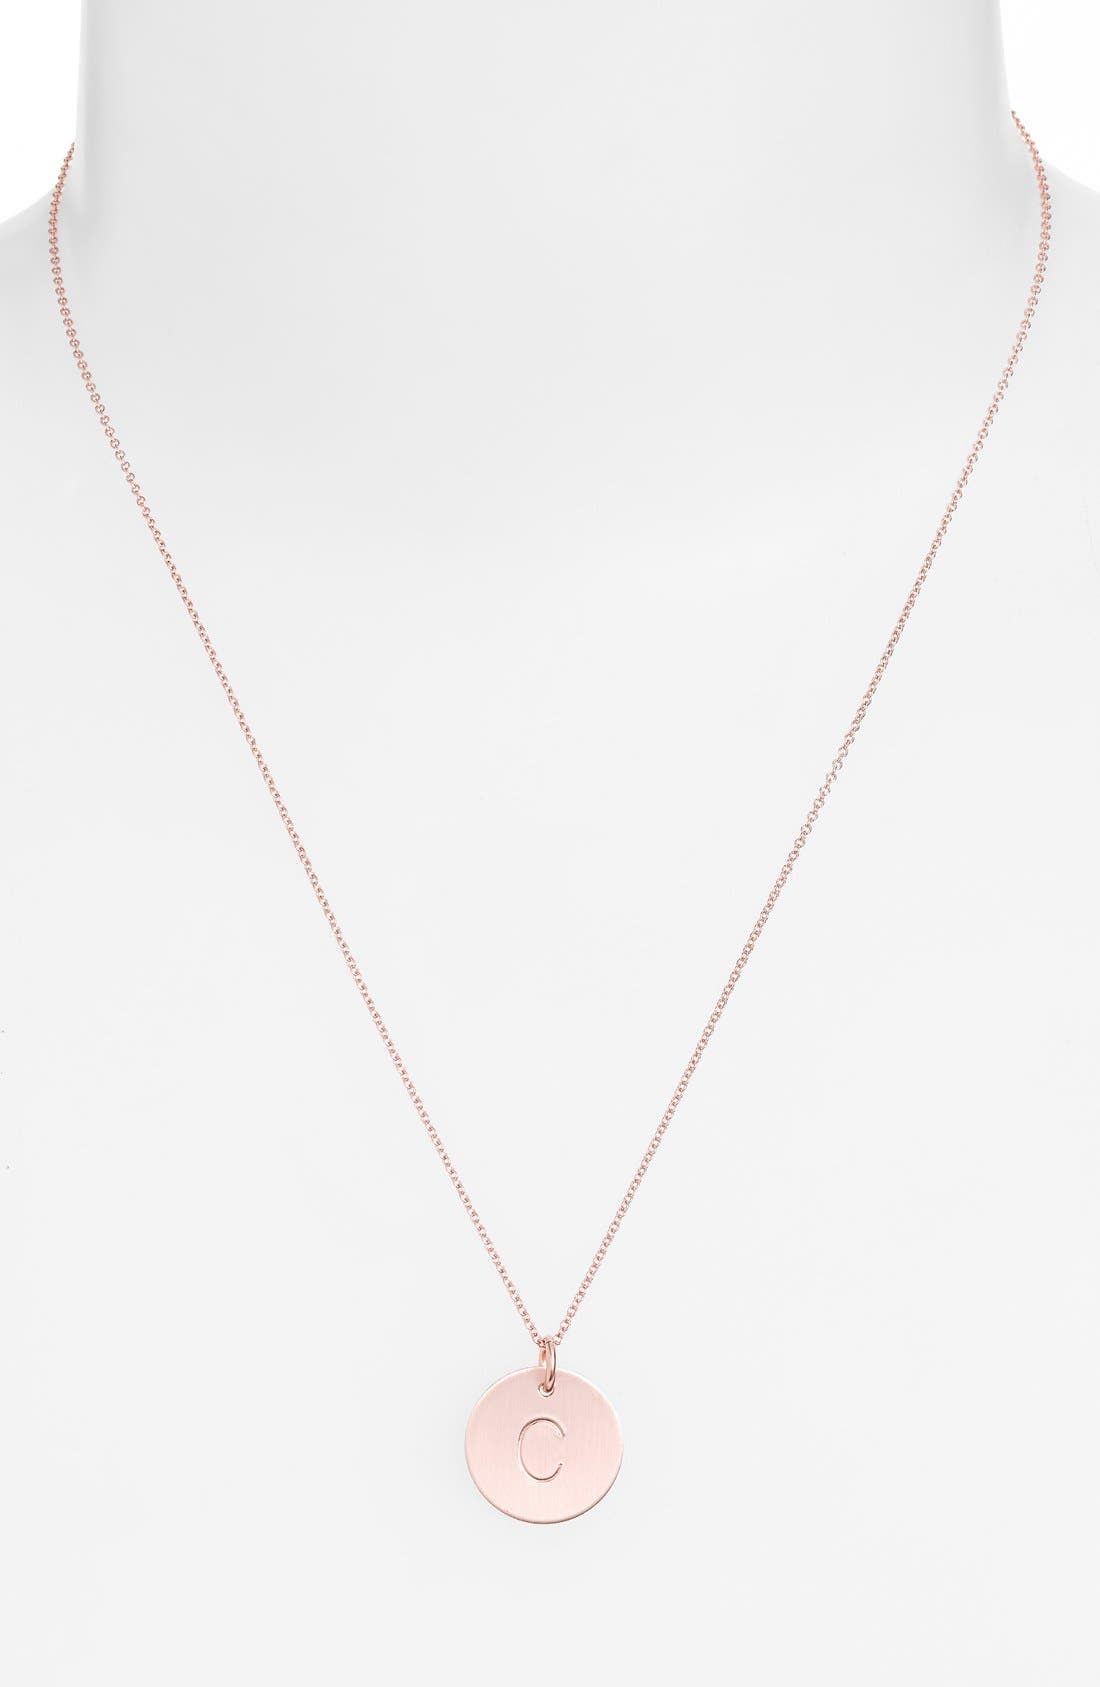 14k-Rose Gold Fill Initial Disc Necklace,                             Alternate thumbnail 29, color,